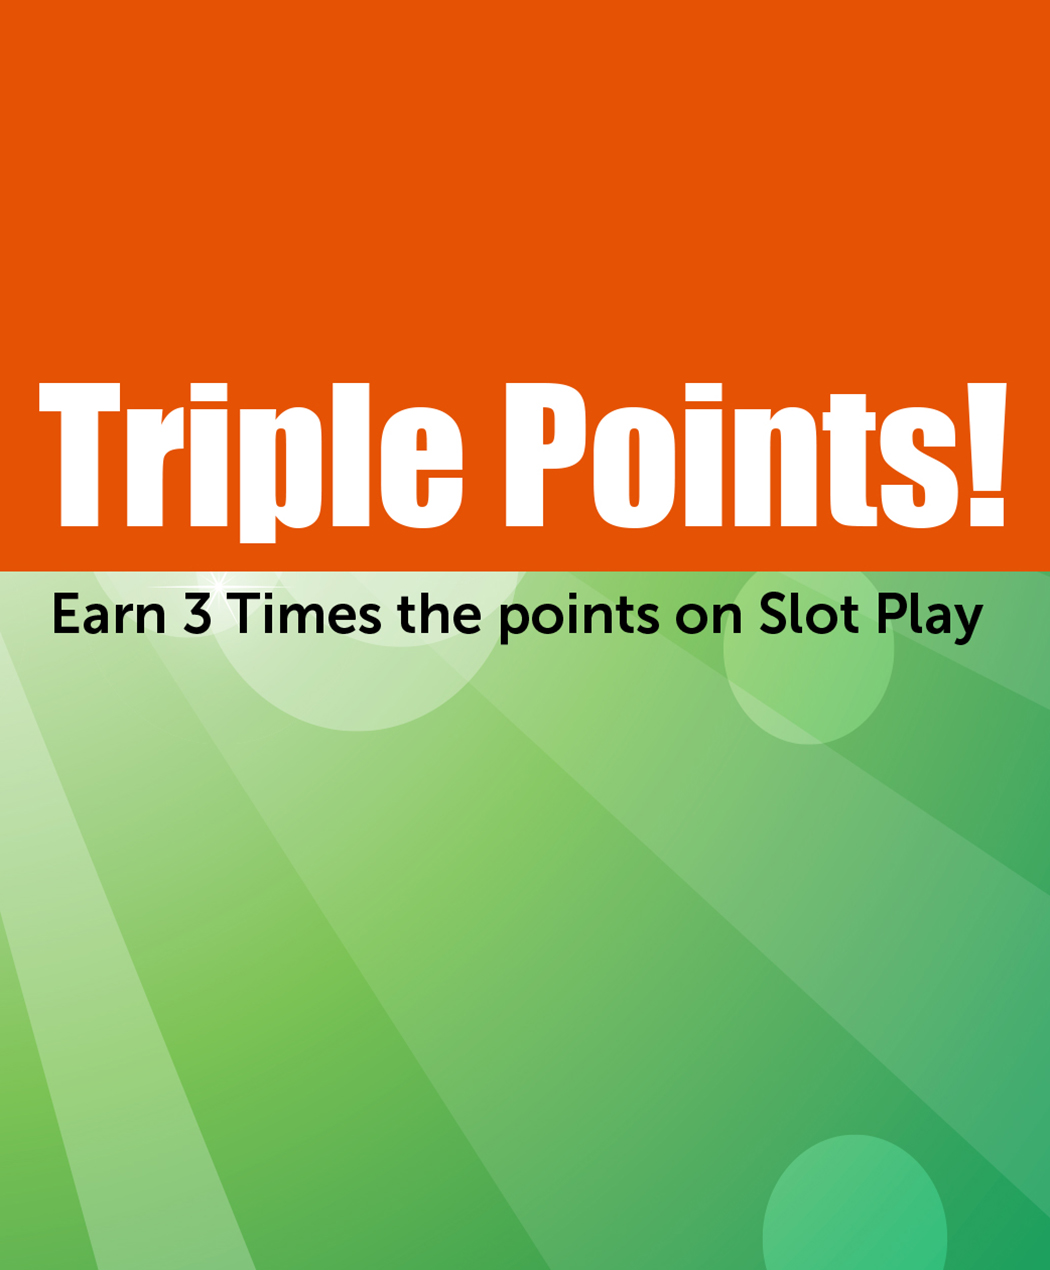 Triple Points